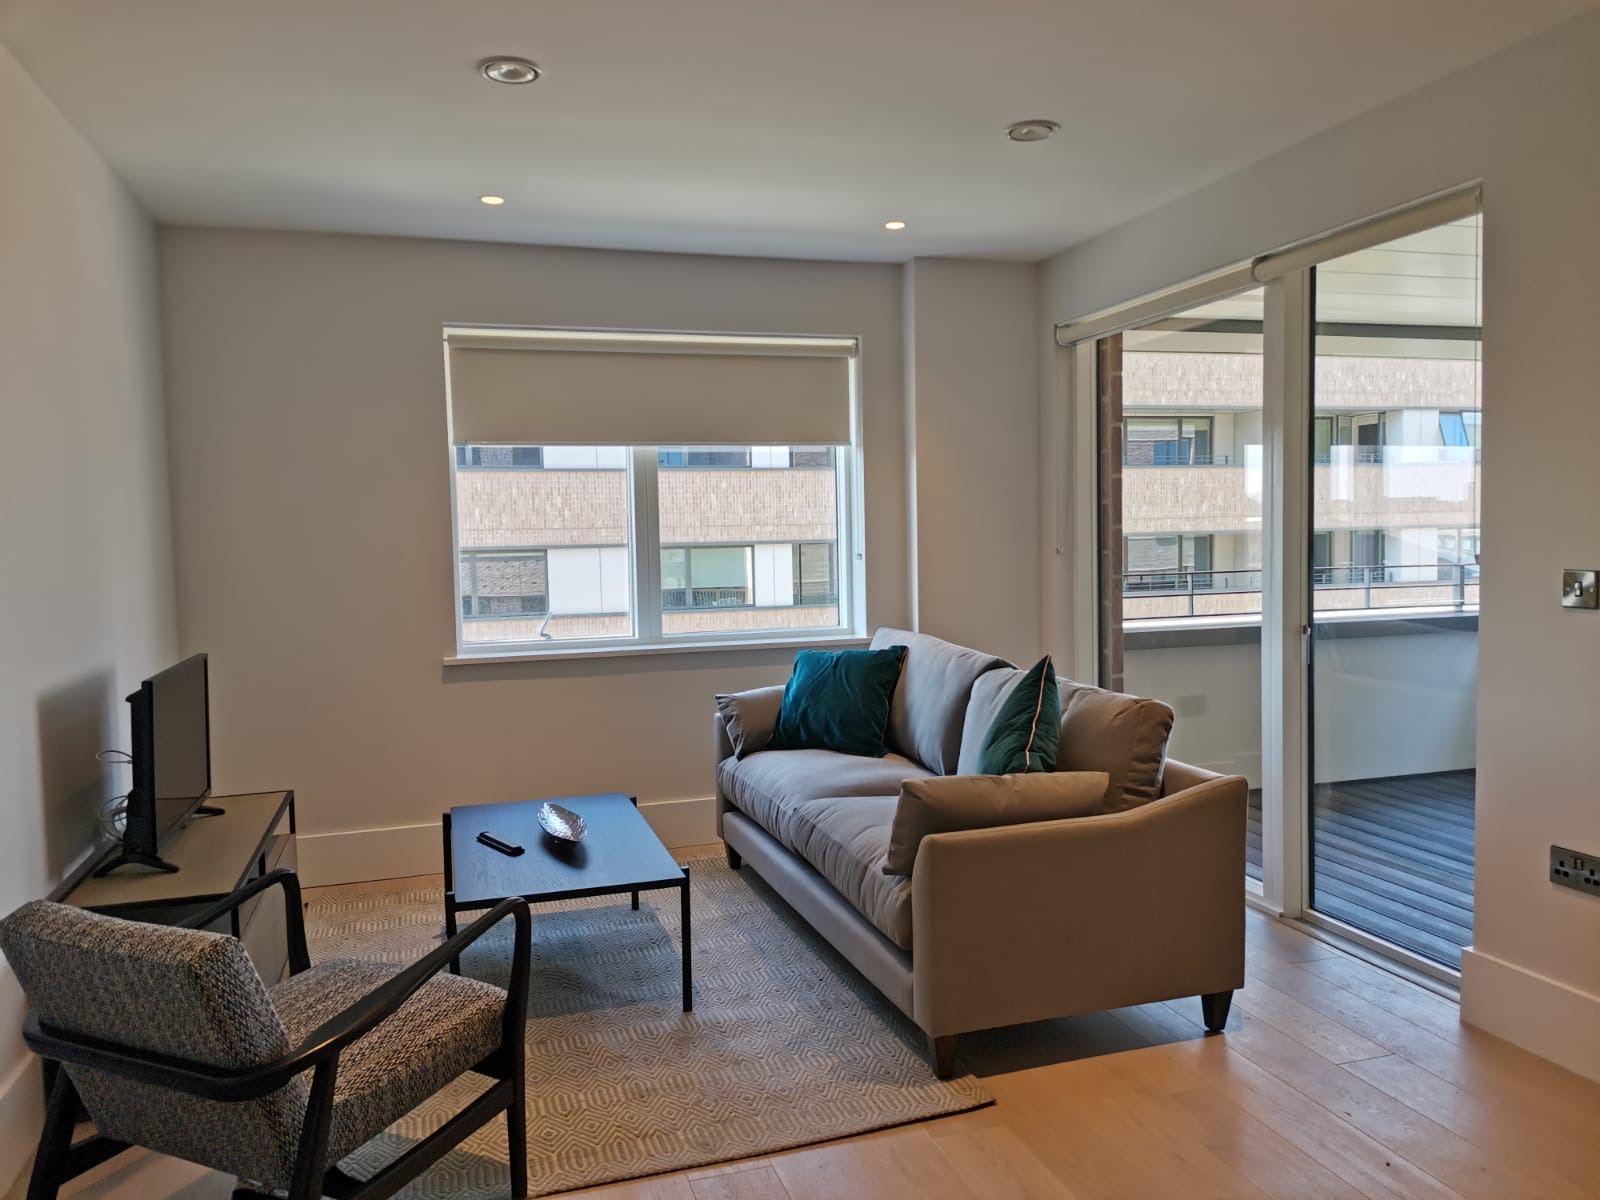 Sitting area at Heathrow North Apartments, Hounslow, London - Citybase Apartments